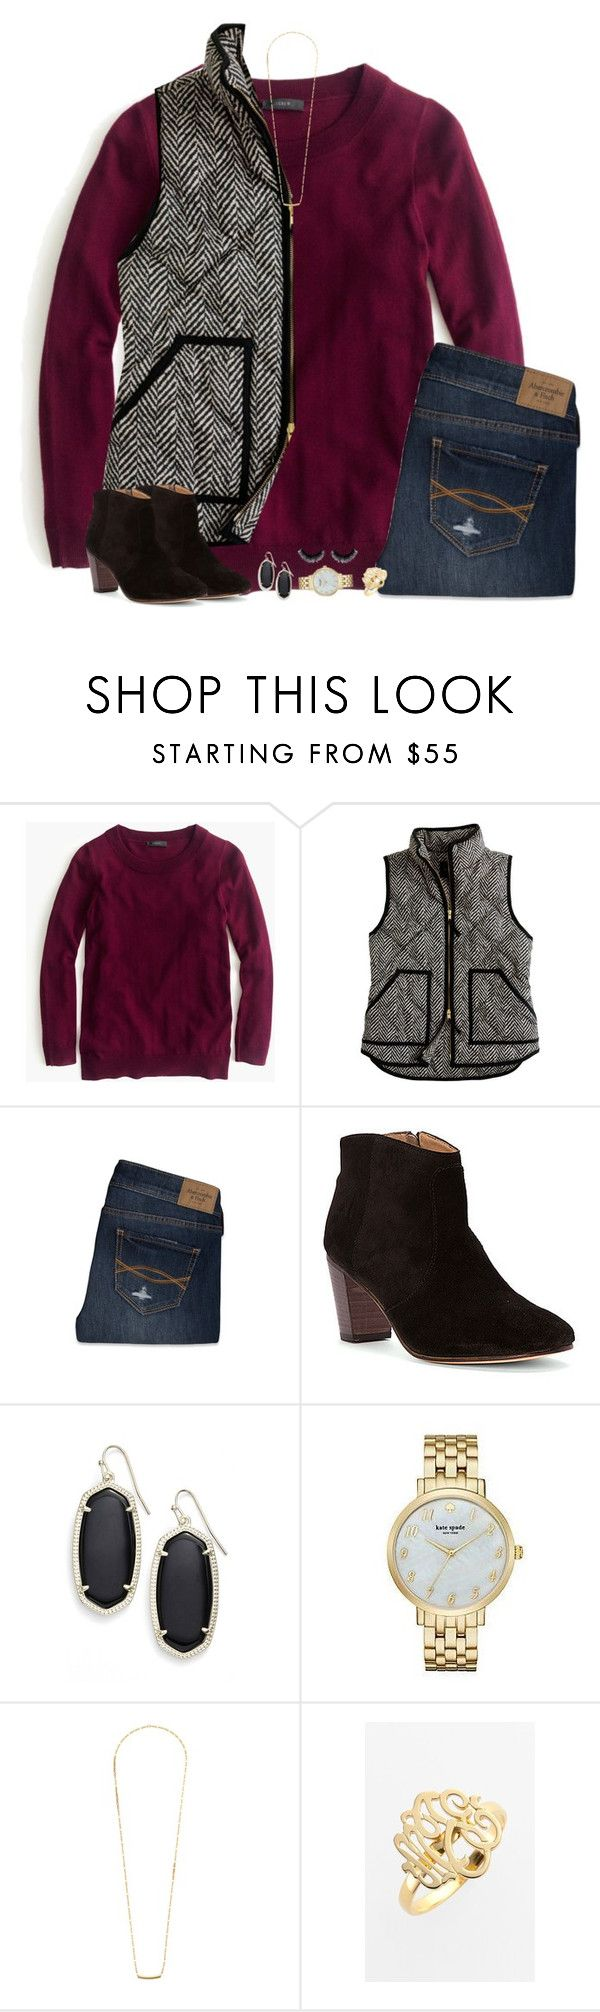 """Something I'd wear"" by smbprep ❤ liked on Polyvore featuring J.Crew, Abercrombie & Fitch, Johnston & Murphy, Kendra Scott, Kate Spade, Dogeared and Jane Basch"